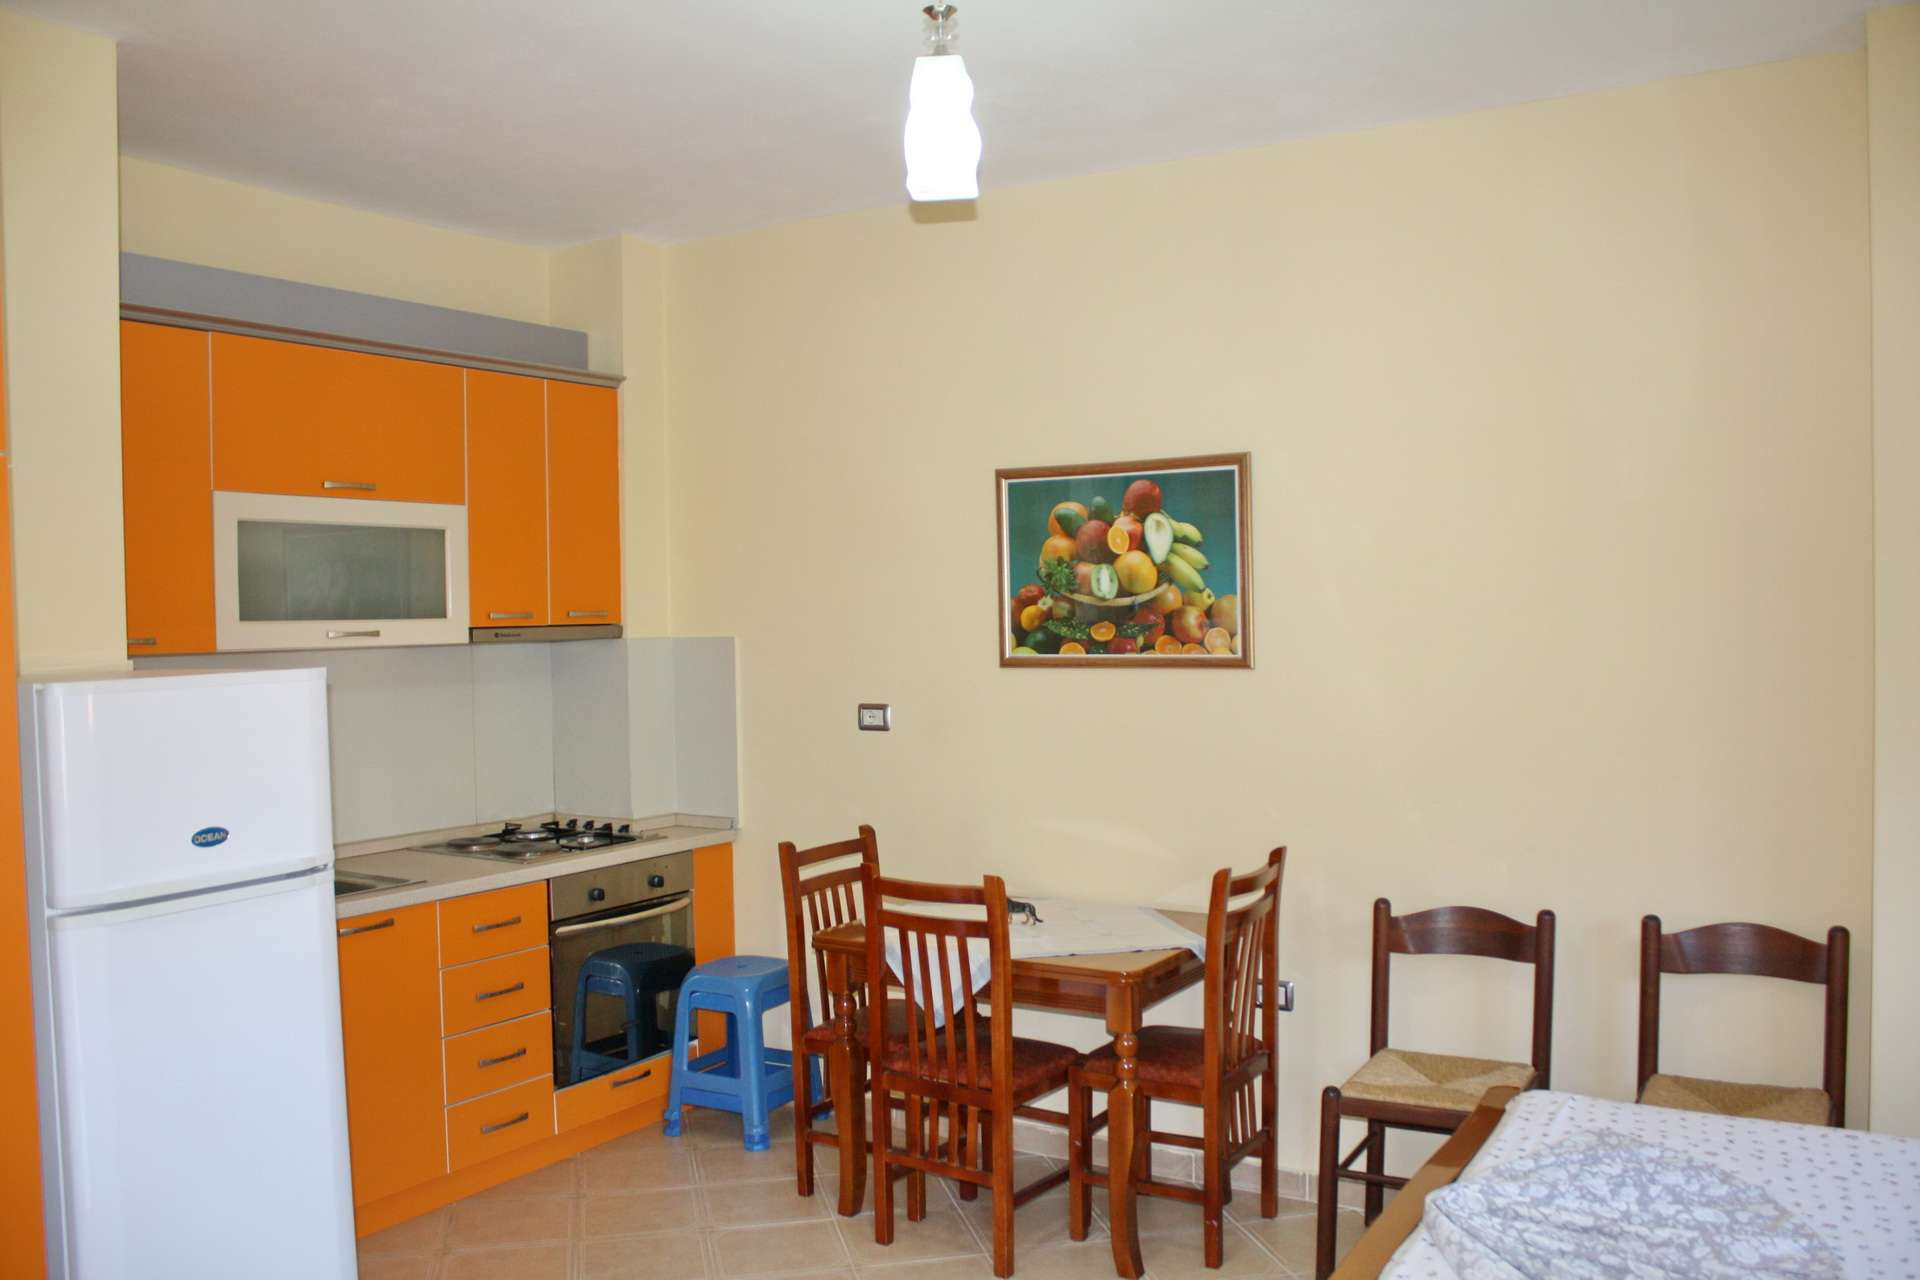 rent in albania studio apartment for rent in vlore property albania. Black Bedroom Furniture Sets. Home Design Ideas